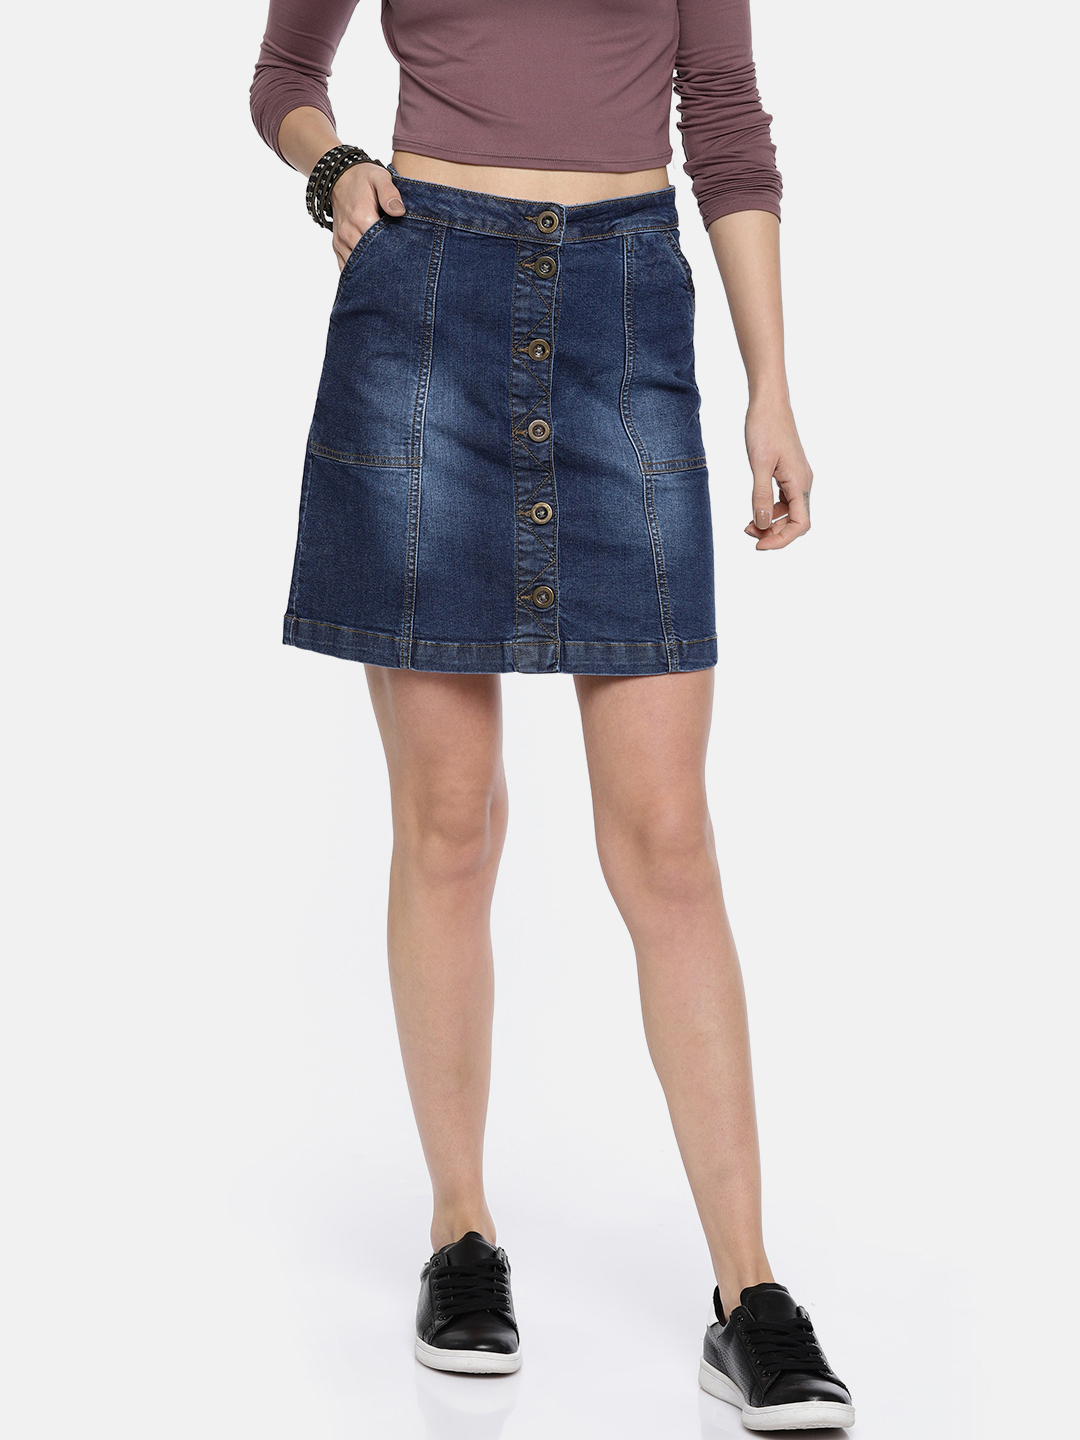 Roadster Women Blue Denim Skirt Price in India